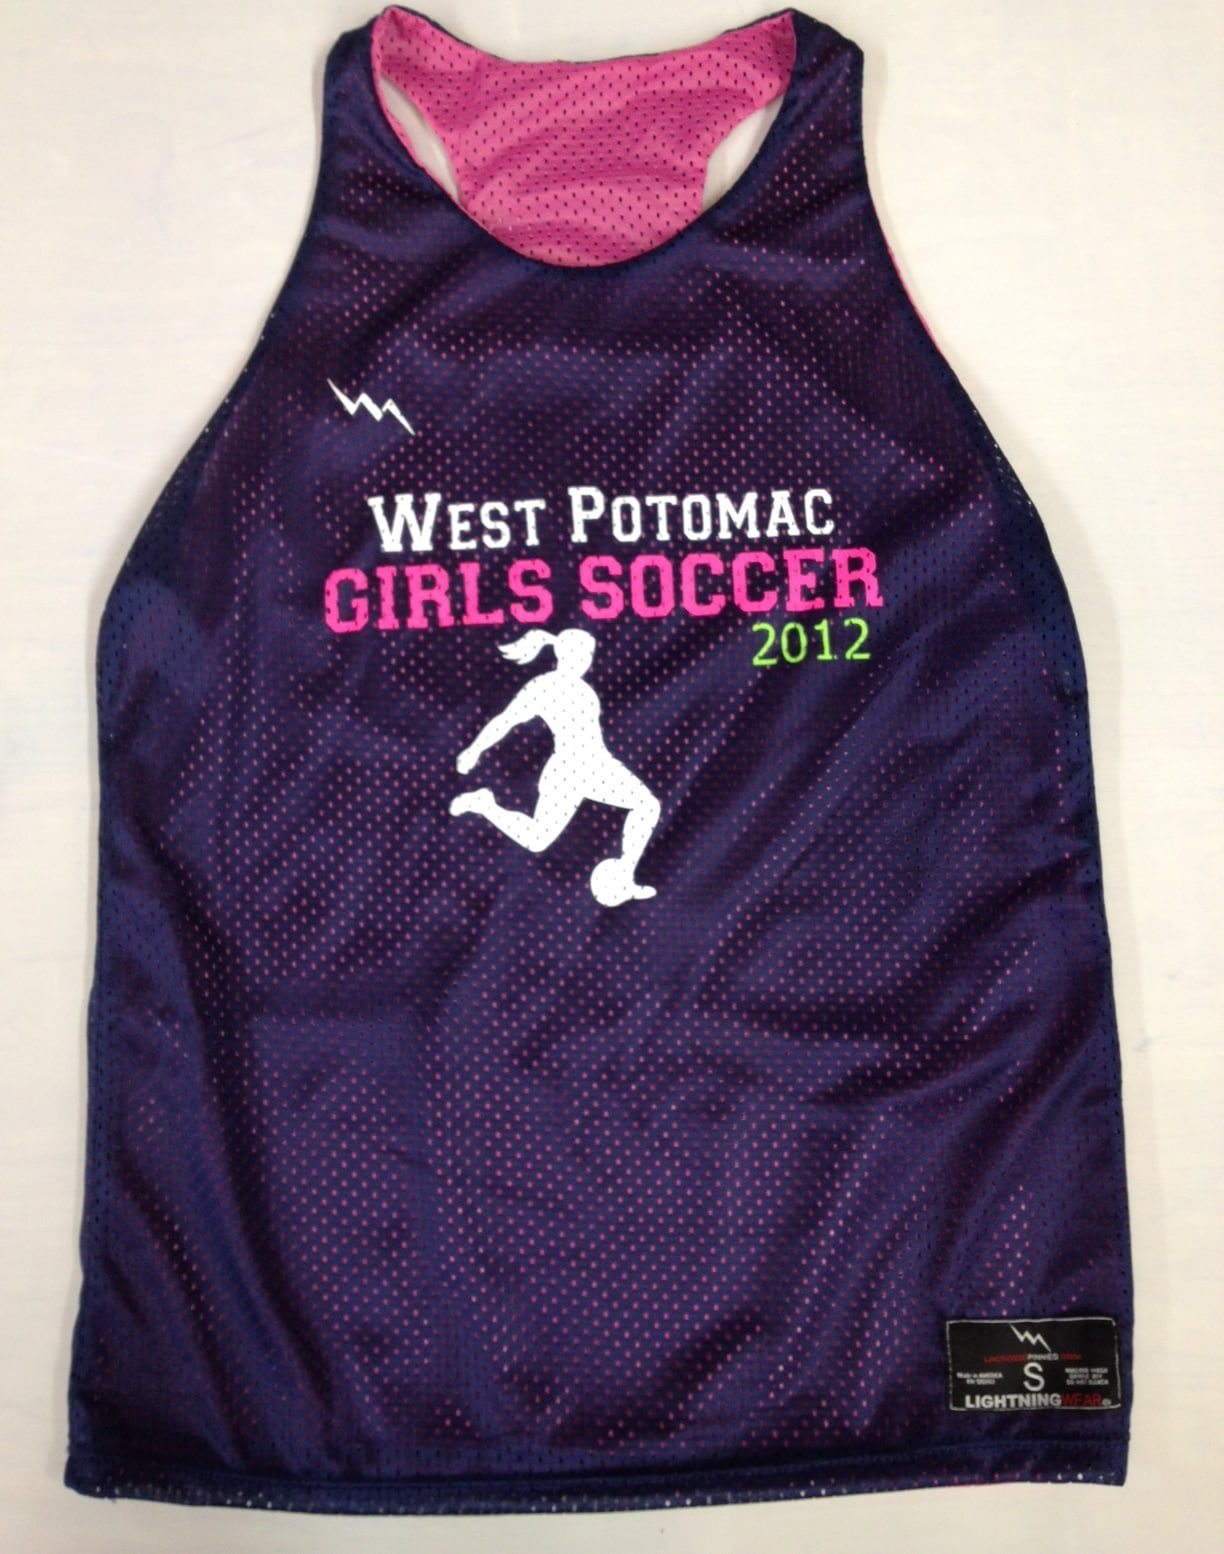 west potomac girls soccer